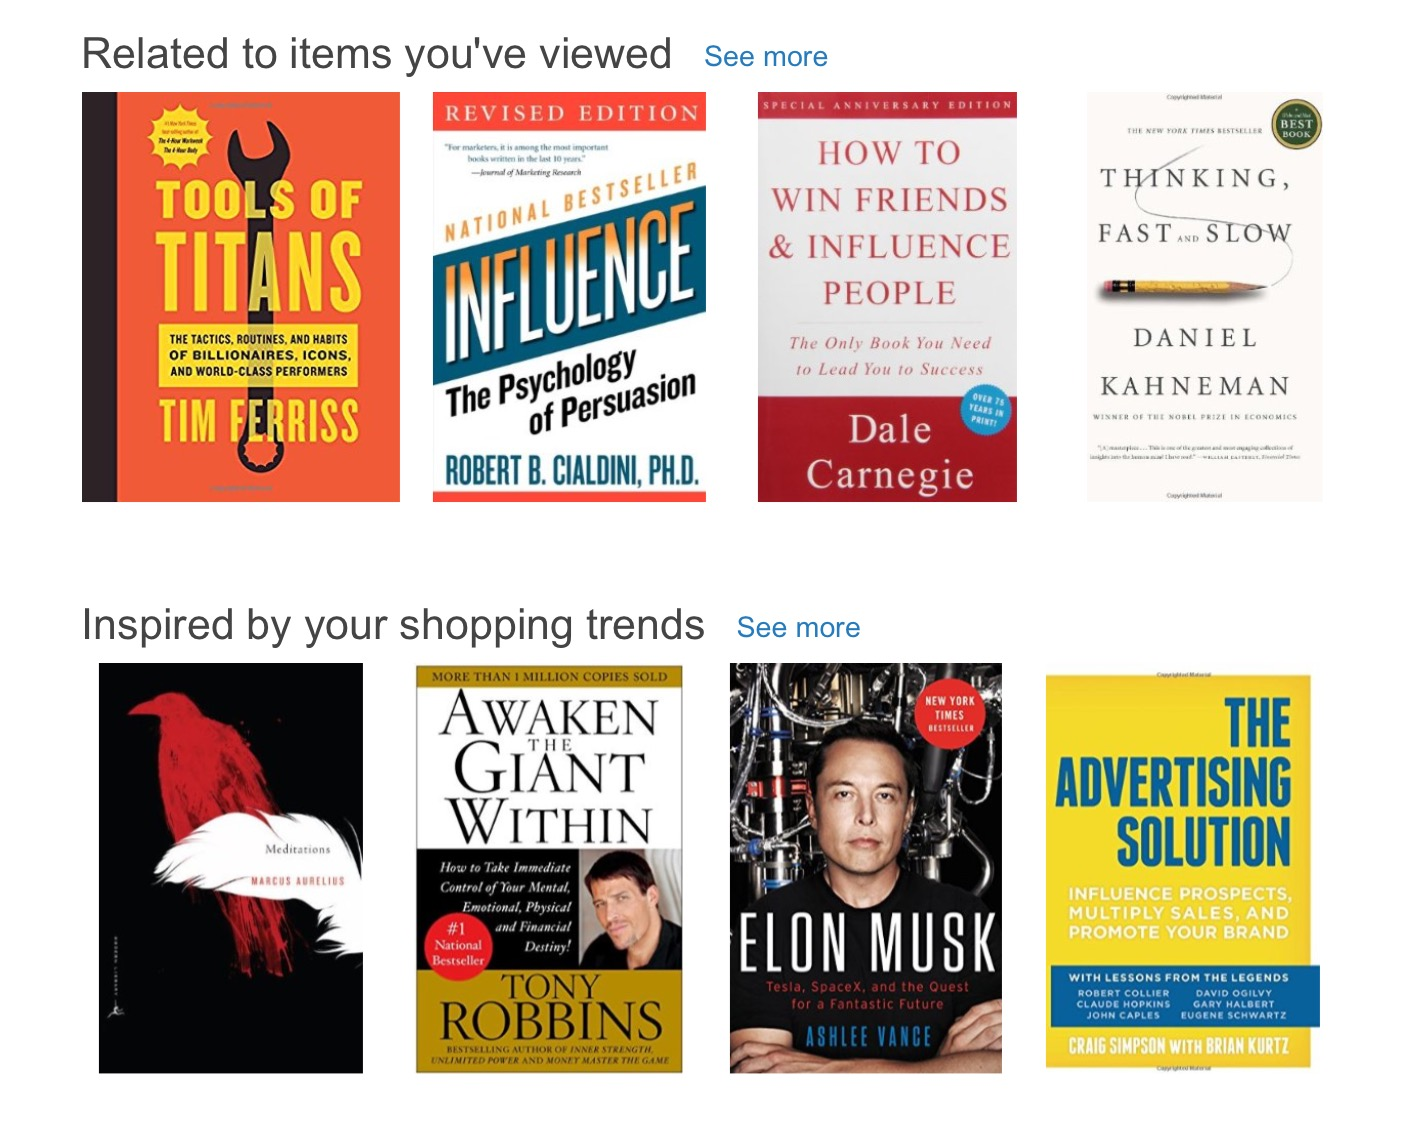 Amazon Books and Products